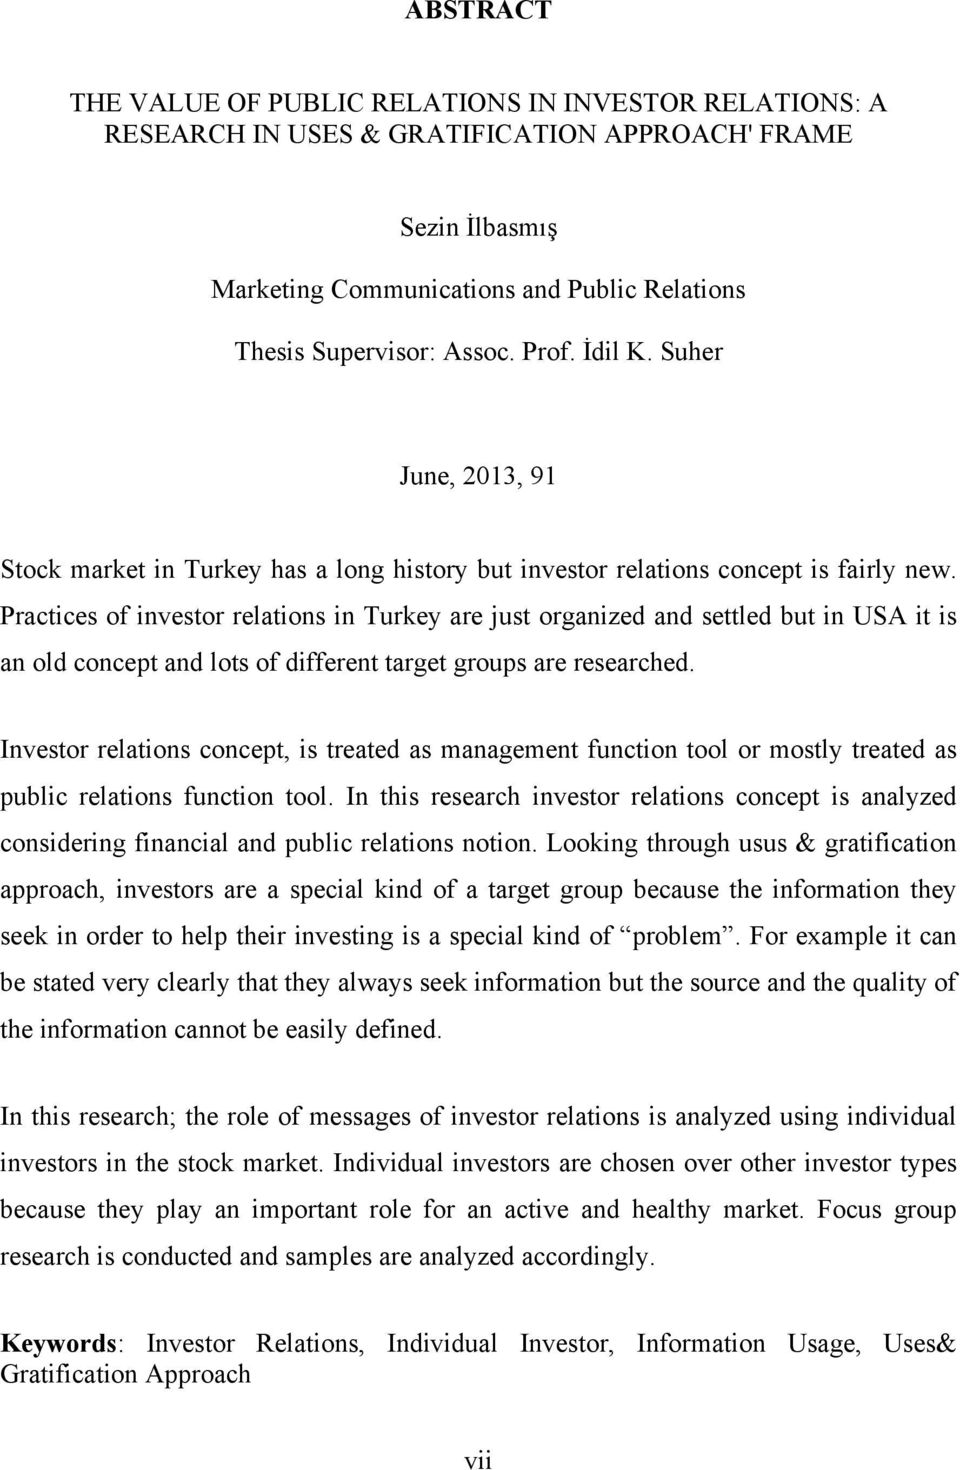 Practices of investor relations in Turkey are just organized and settled but in USA it is an old concept and lots of different target groups are researched.